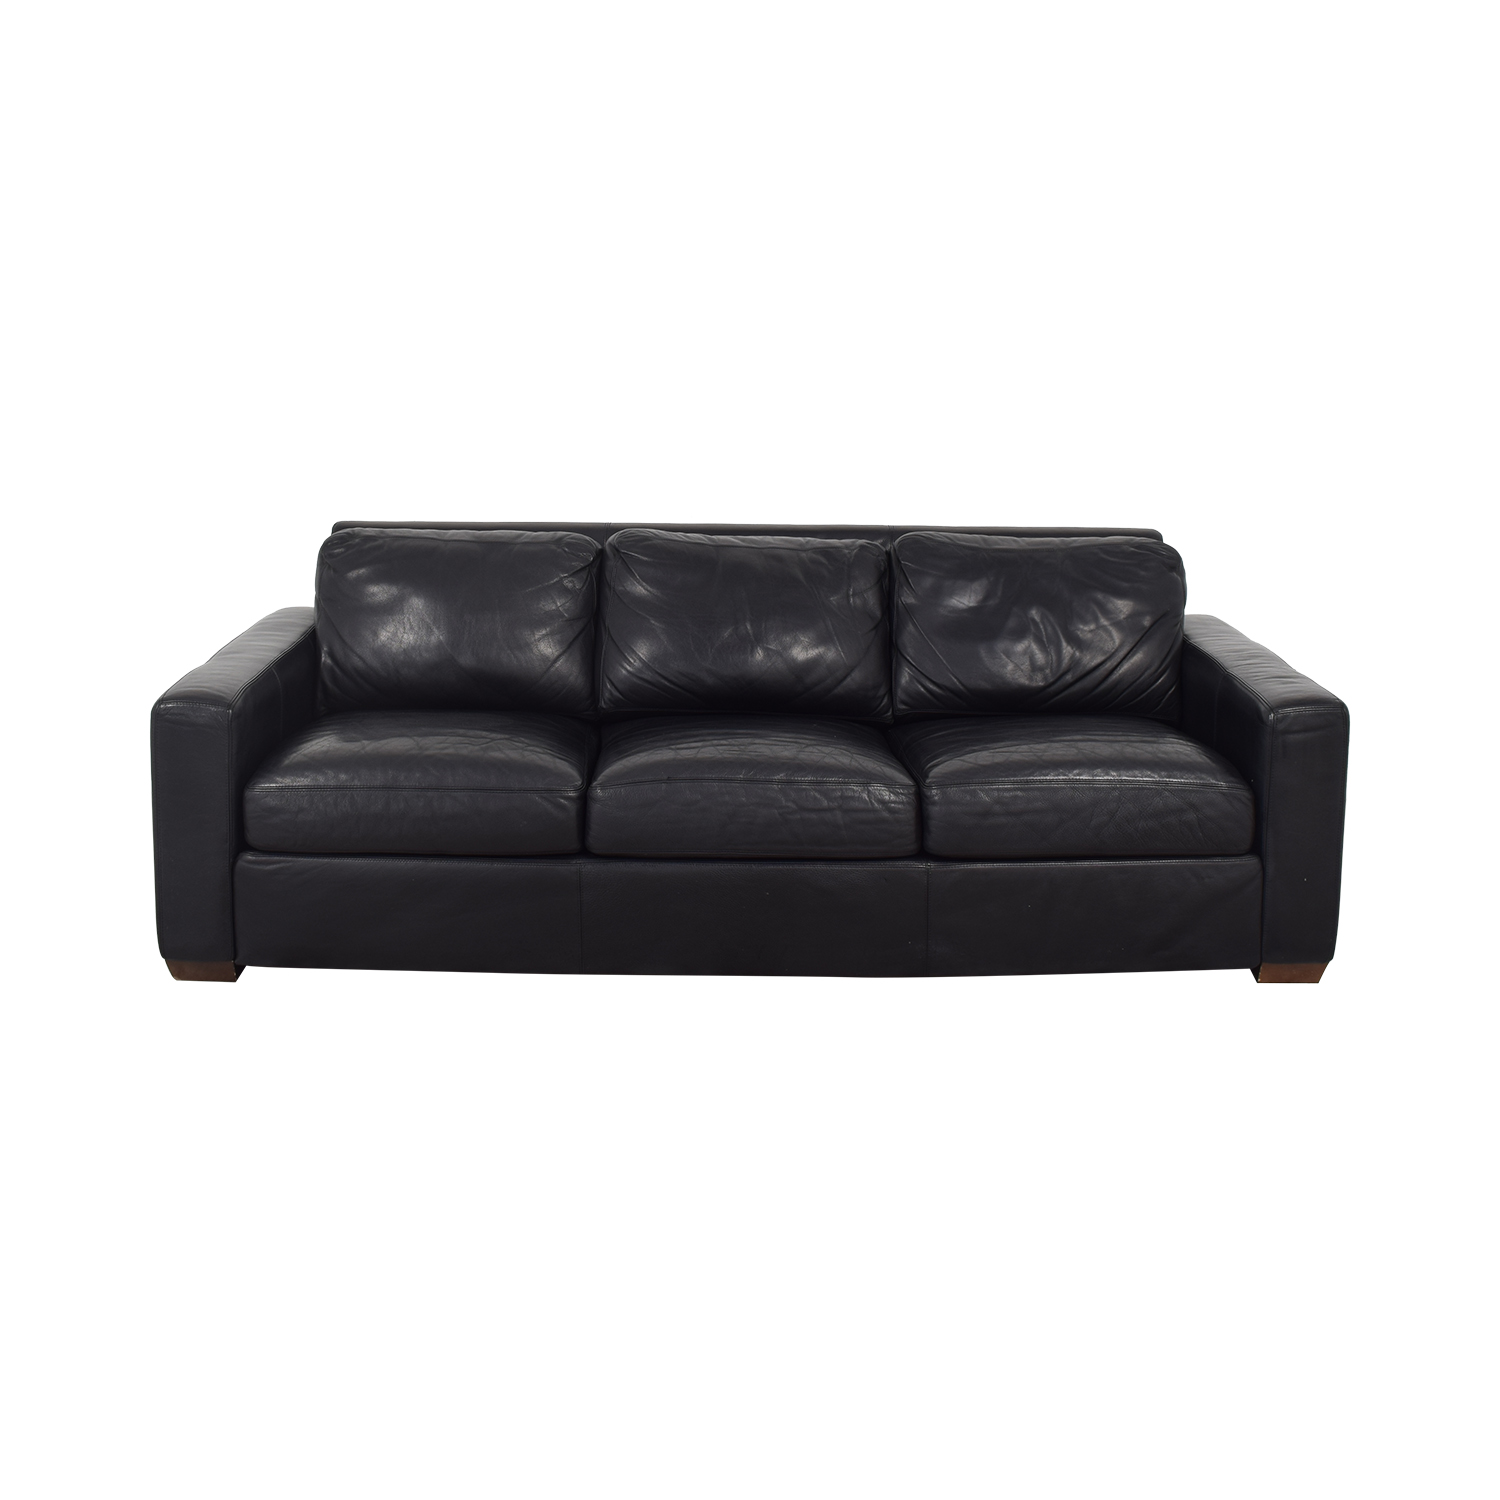 Design Within Reach Design Within Reach Portola Sofa used